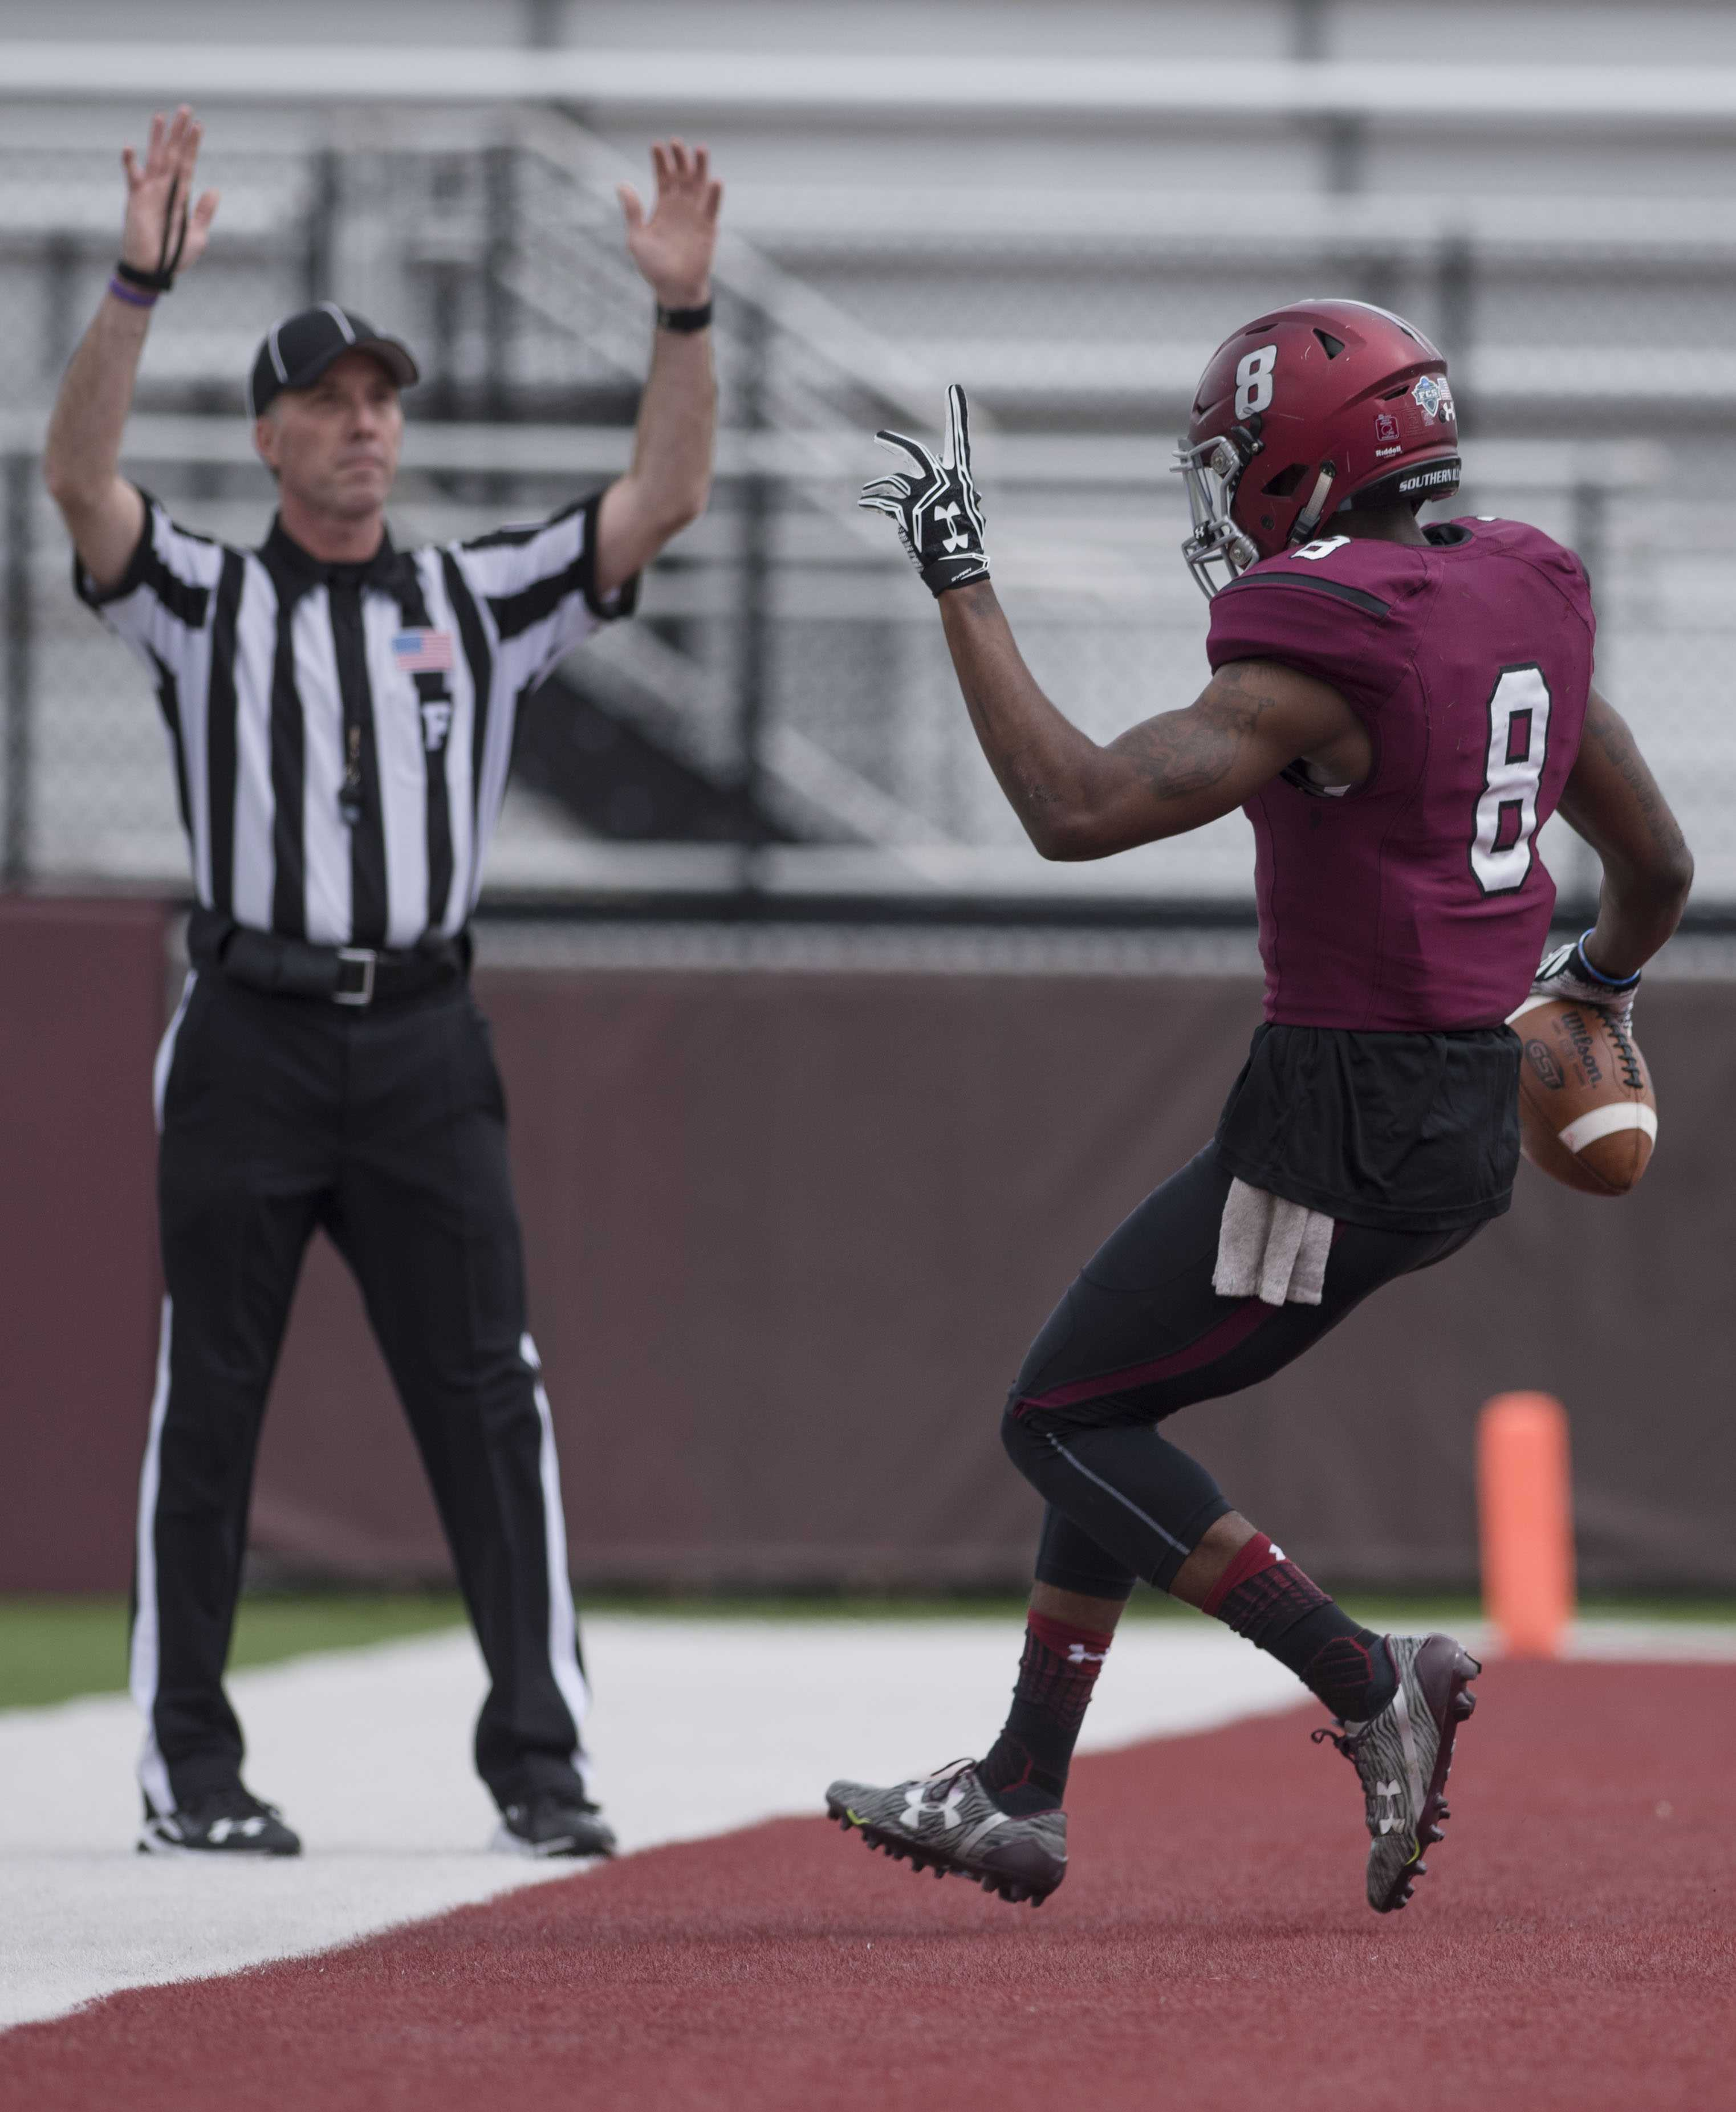 Junior+wide+receiver+Darrell+James+scores+a+touchdown+during+SIU+football%E2%80%99s+first+spring+scrimmage+of+the+season+on+Sunday%2C+March+26%2C+2017%2C+at+Saluki+Stadium.+%28Bill+Lukitsch+%7C+%40lukitsbill%29